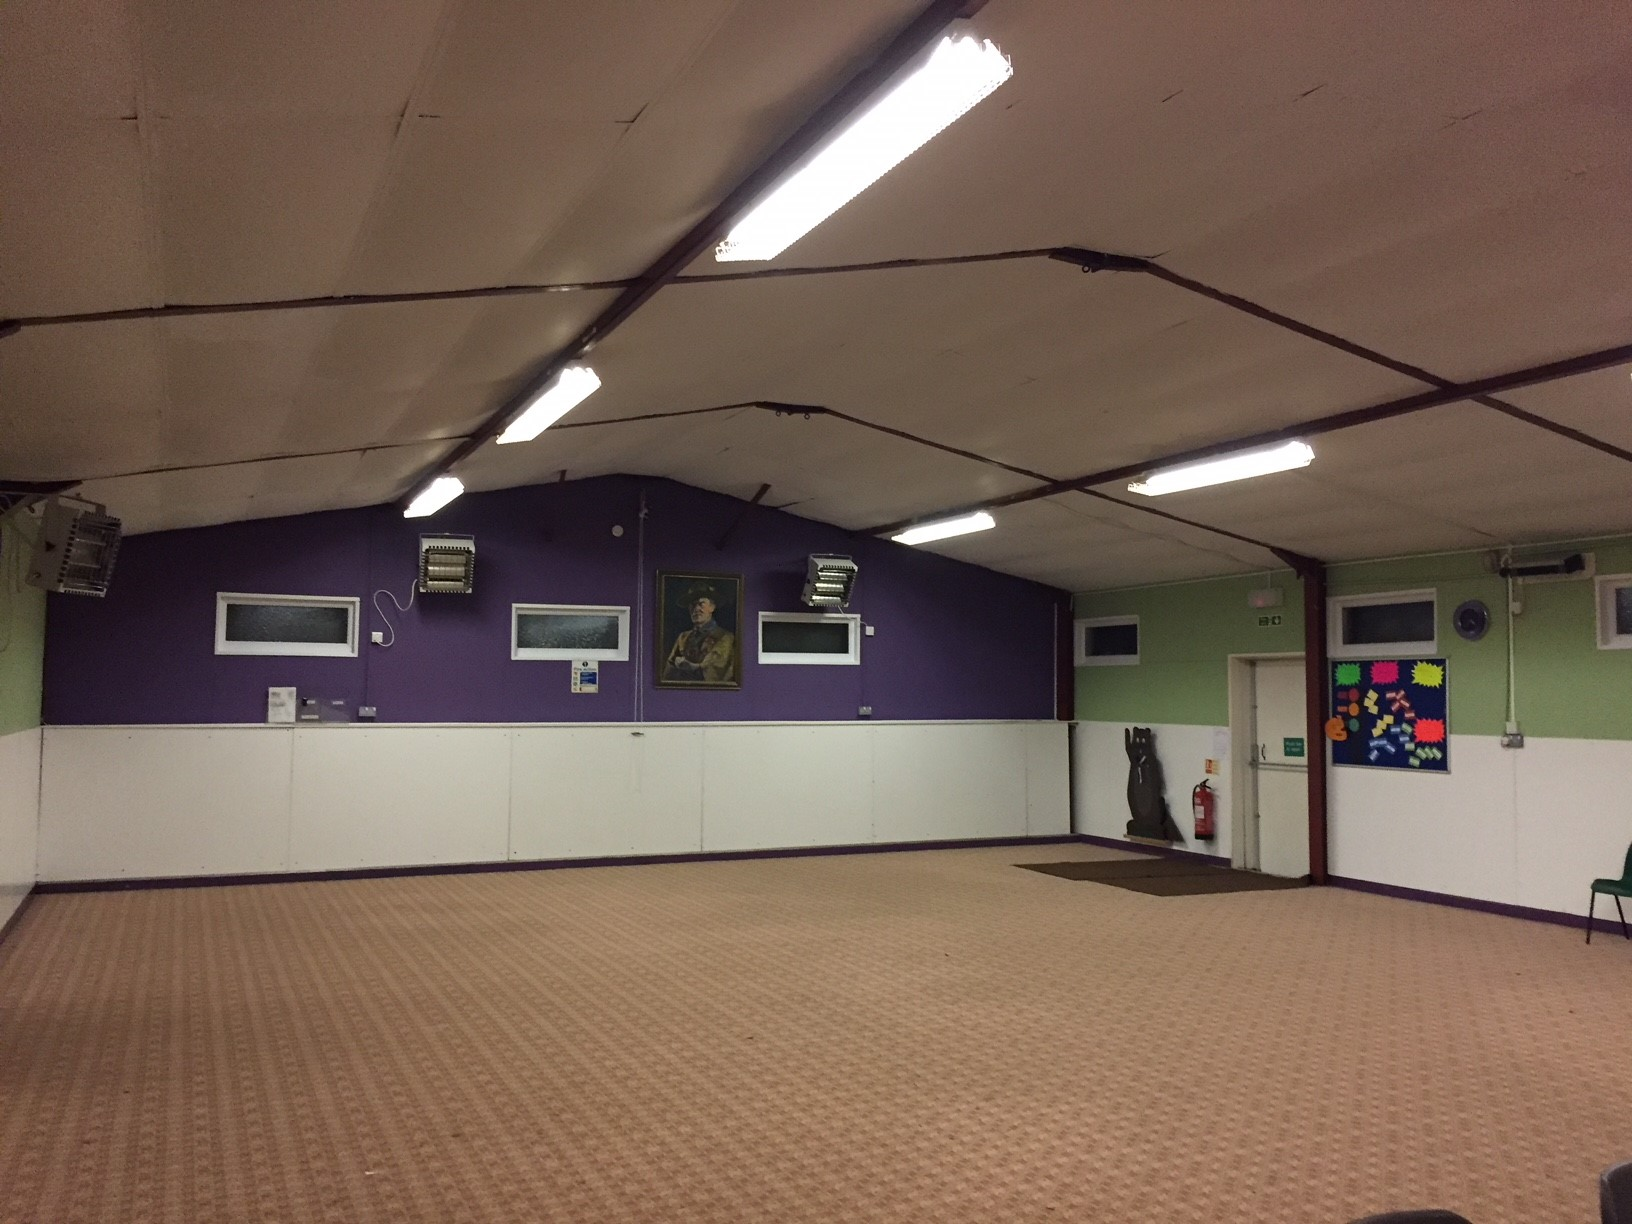 Newly painted scout hut in purple and green